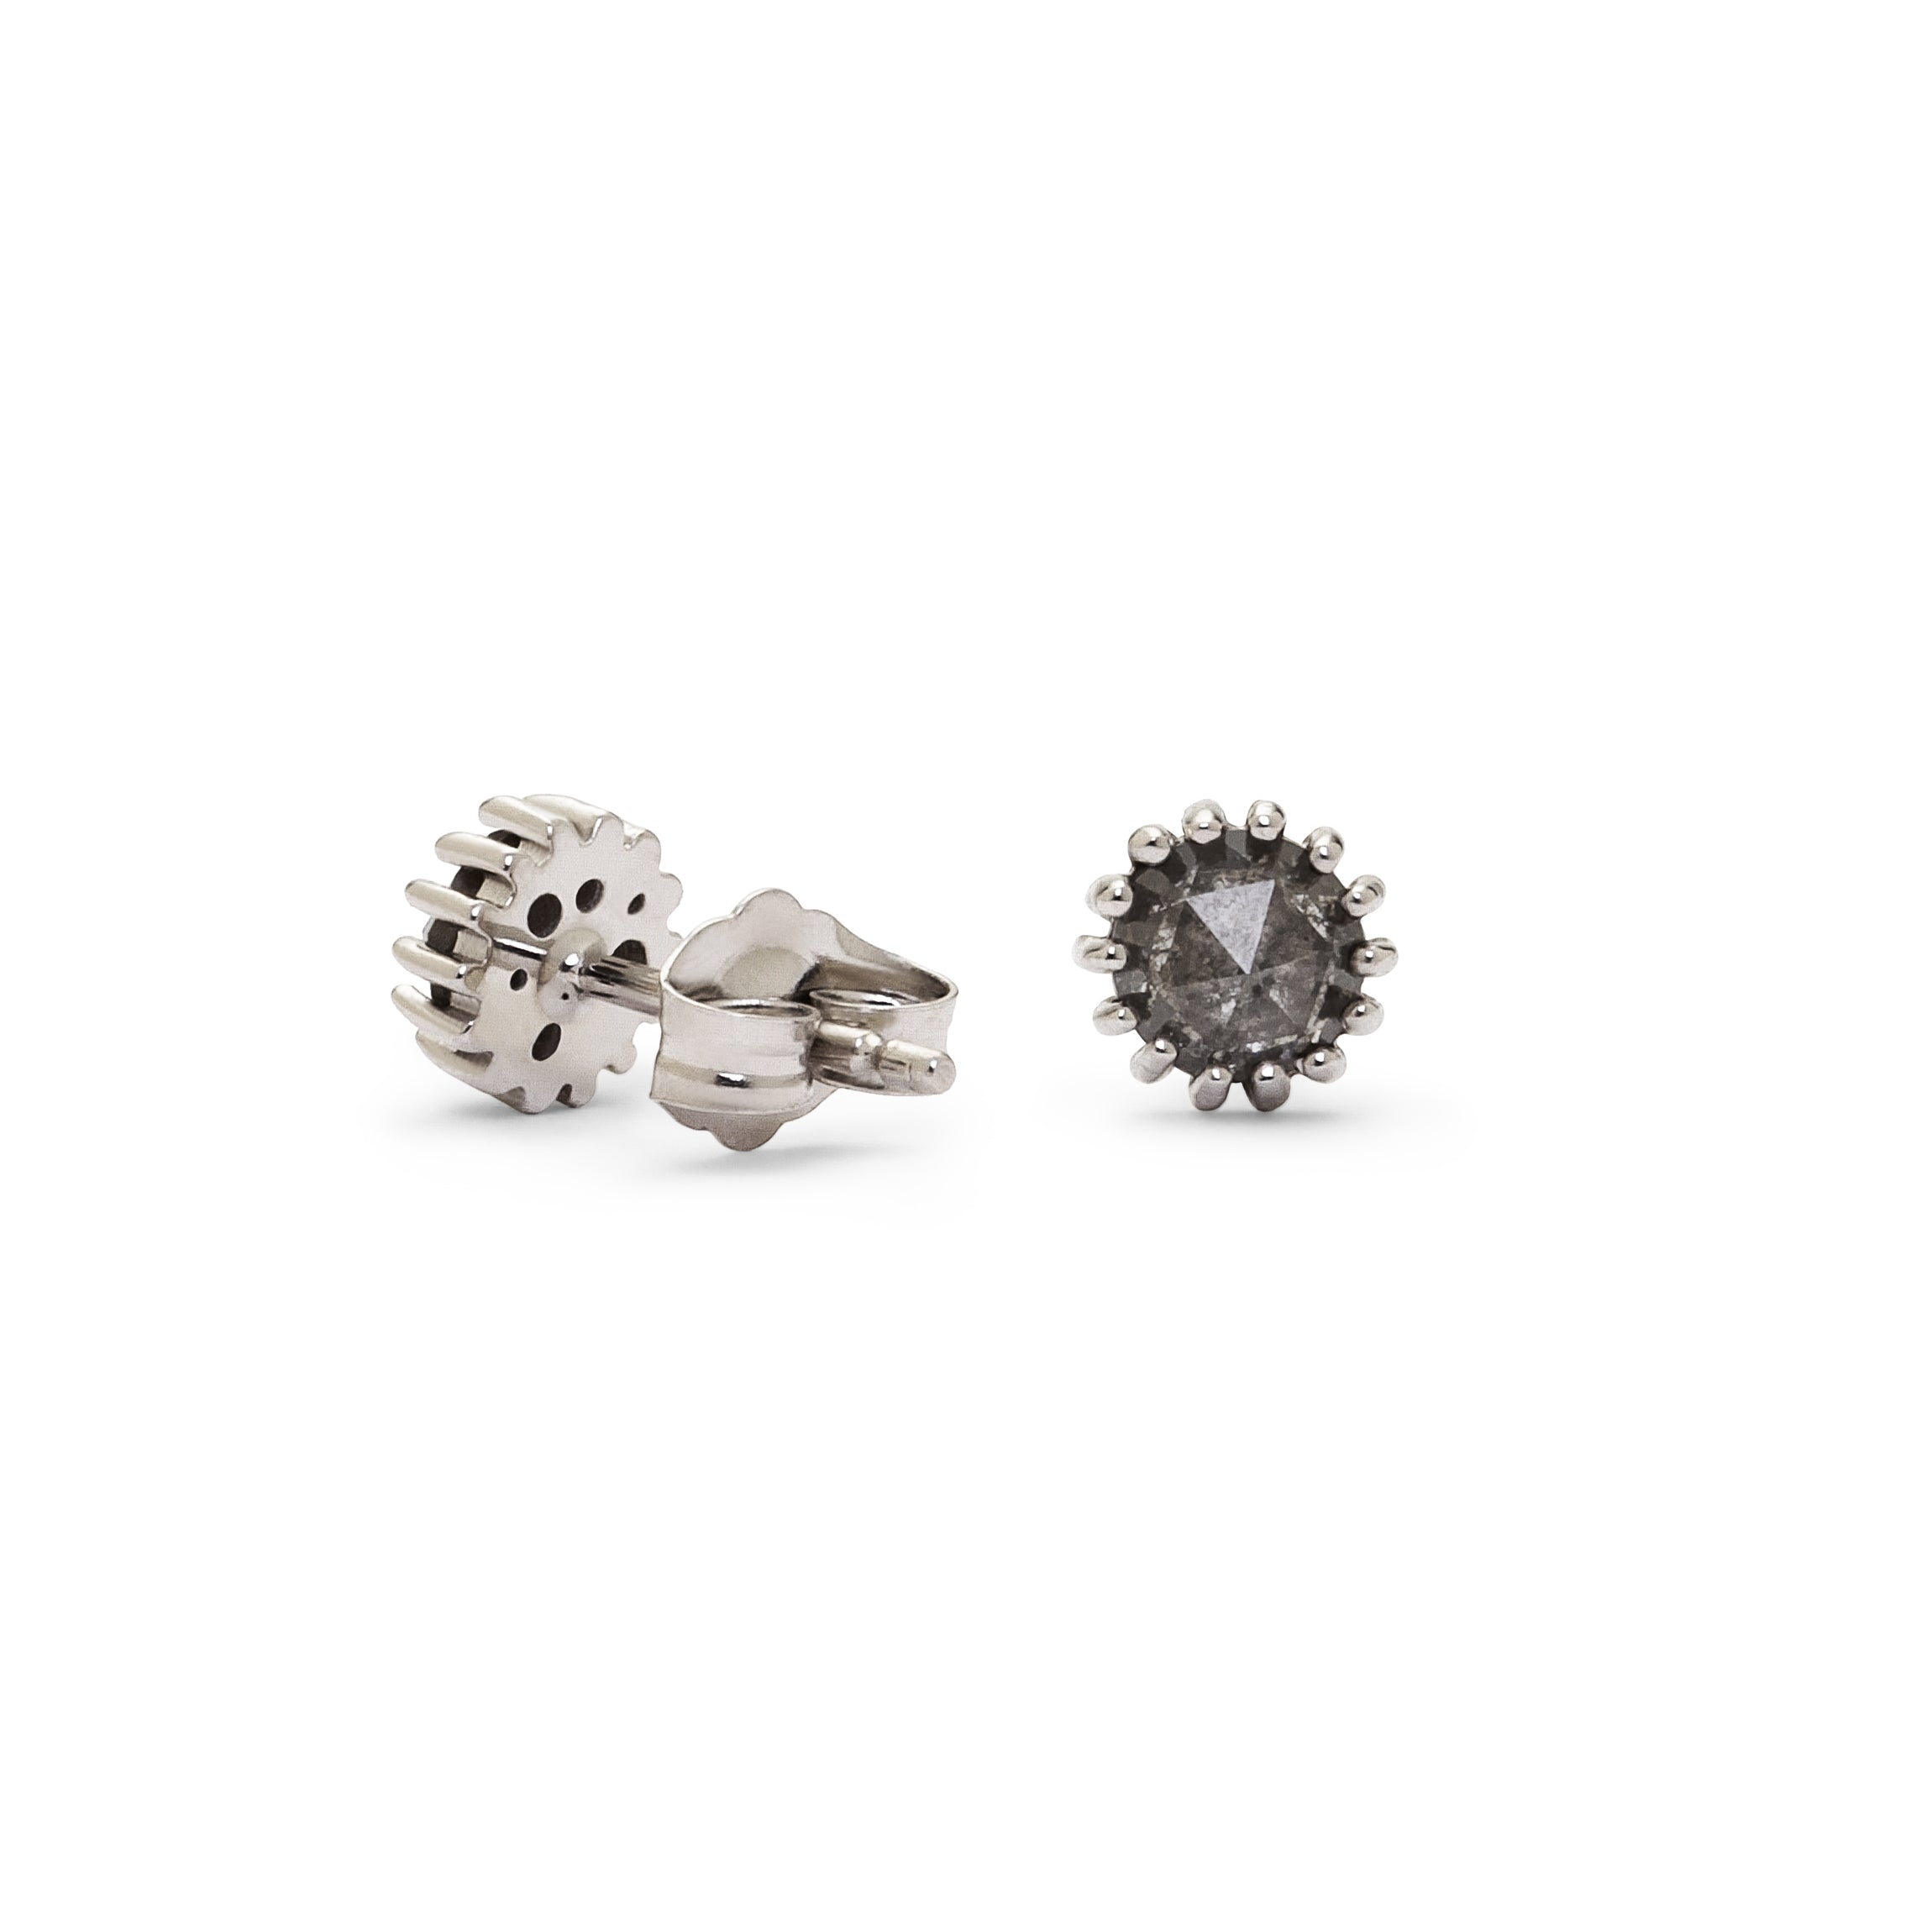 diamond products set fm judith arnell invisible earrings white gold stud